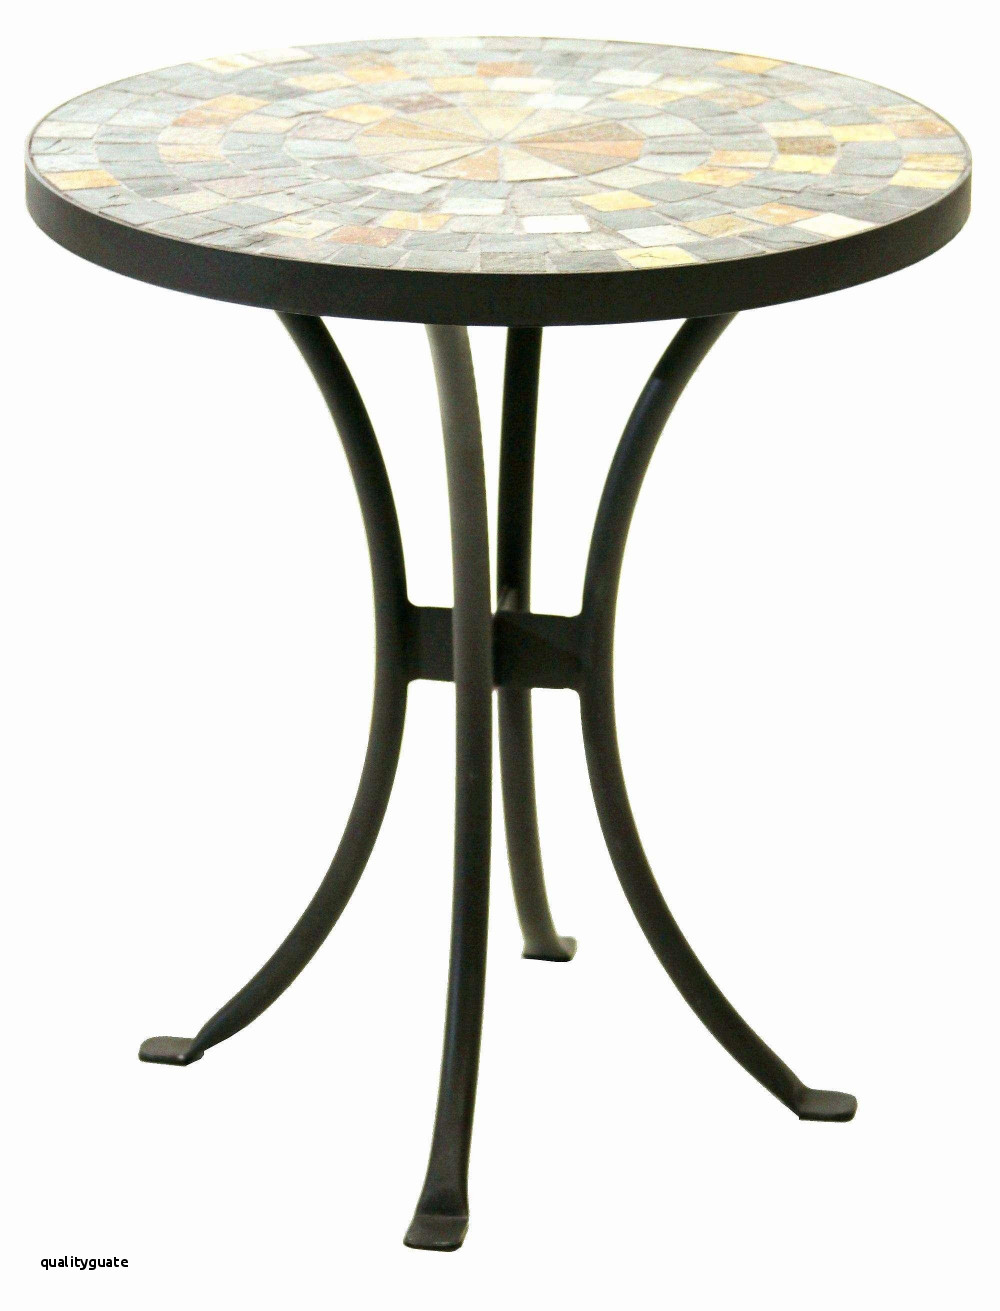 lamp tables contemporary round gold accent table fresh best how decorate end lamps kitchen set clearance outdoor chairs trunk coffee diy console behind couch low wood decorative